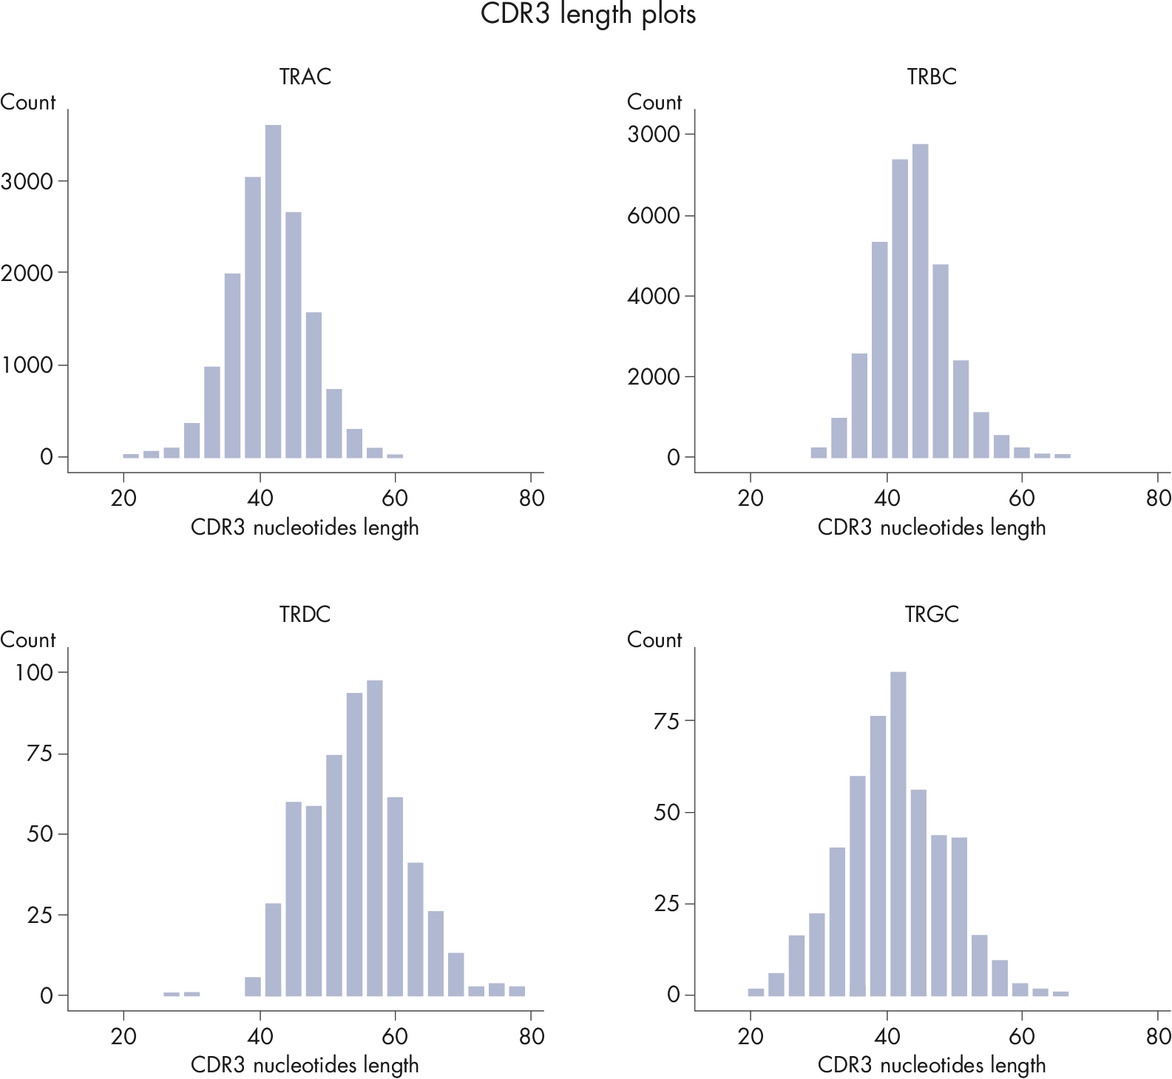 CDR3 Length Plots are Shown for Each Receptor in from a Single Sample.